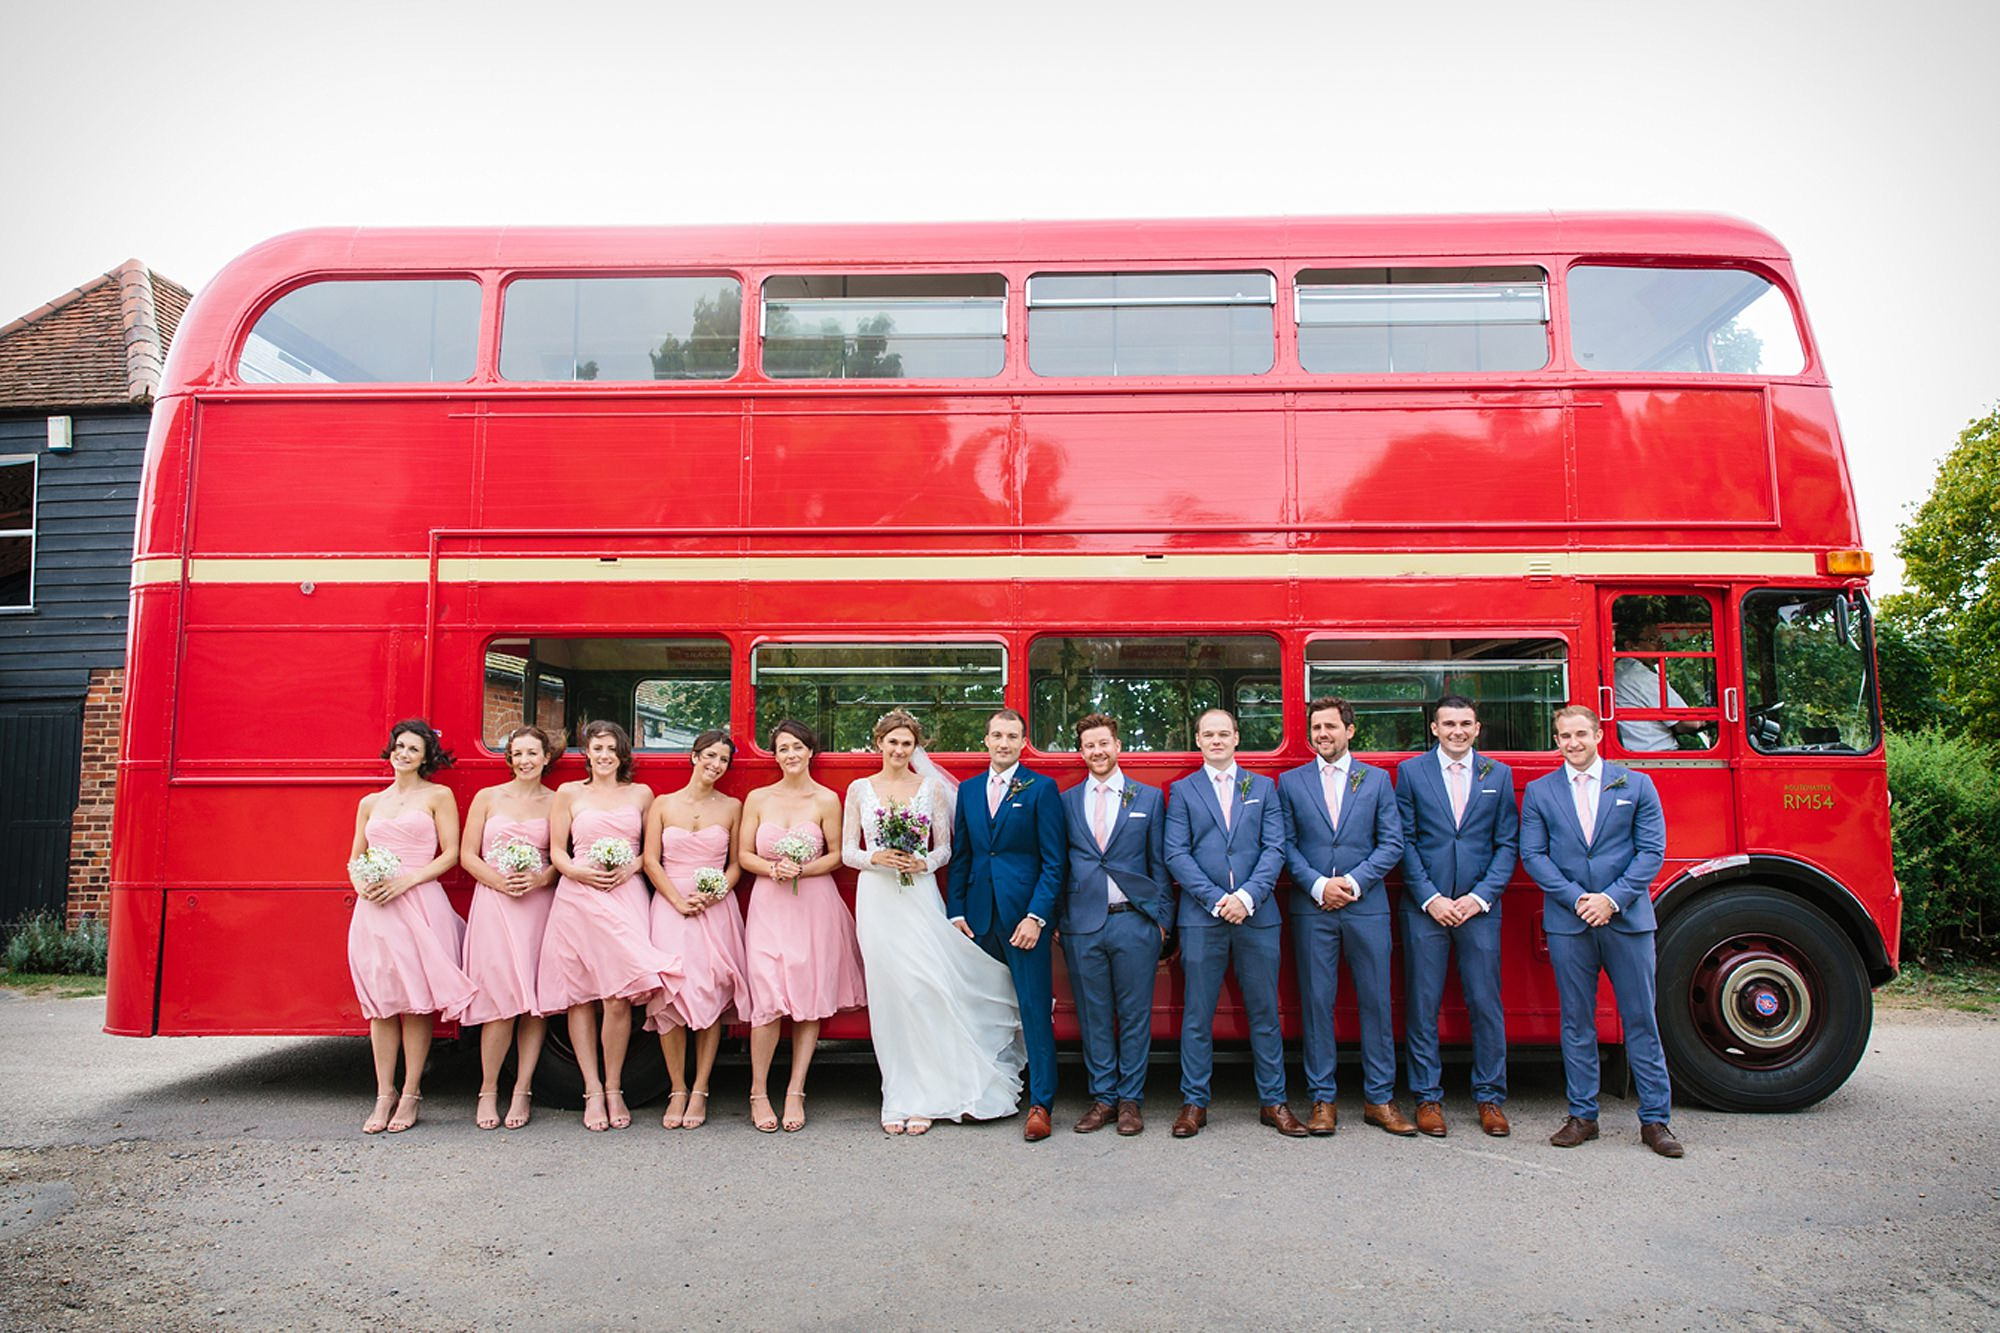 Marks Hall Estate wedding photography bridesmaids and groomsmen in front of vintage bus